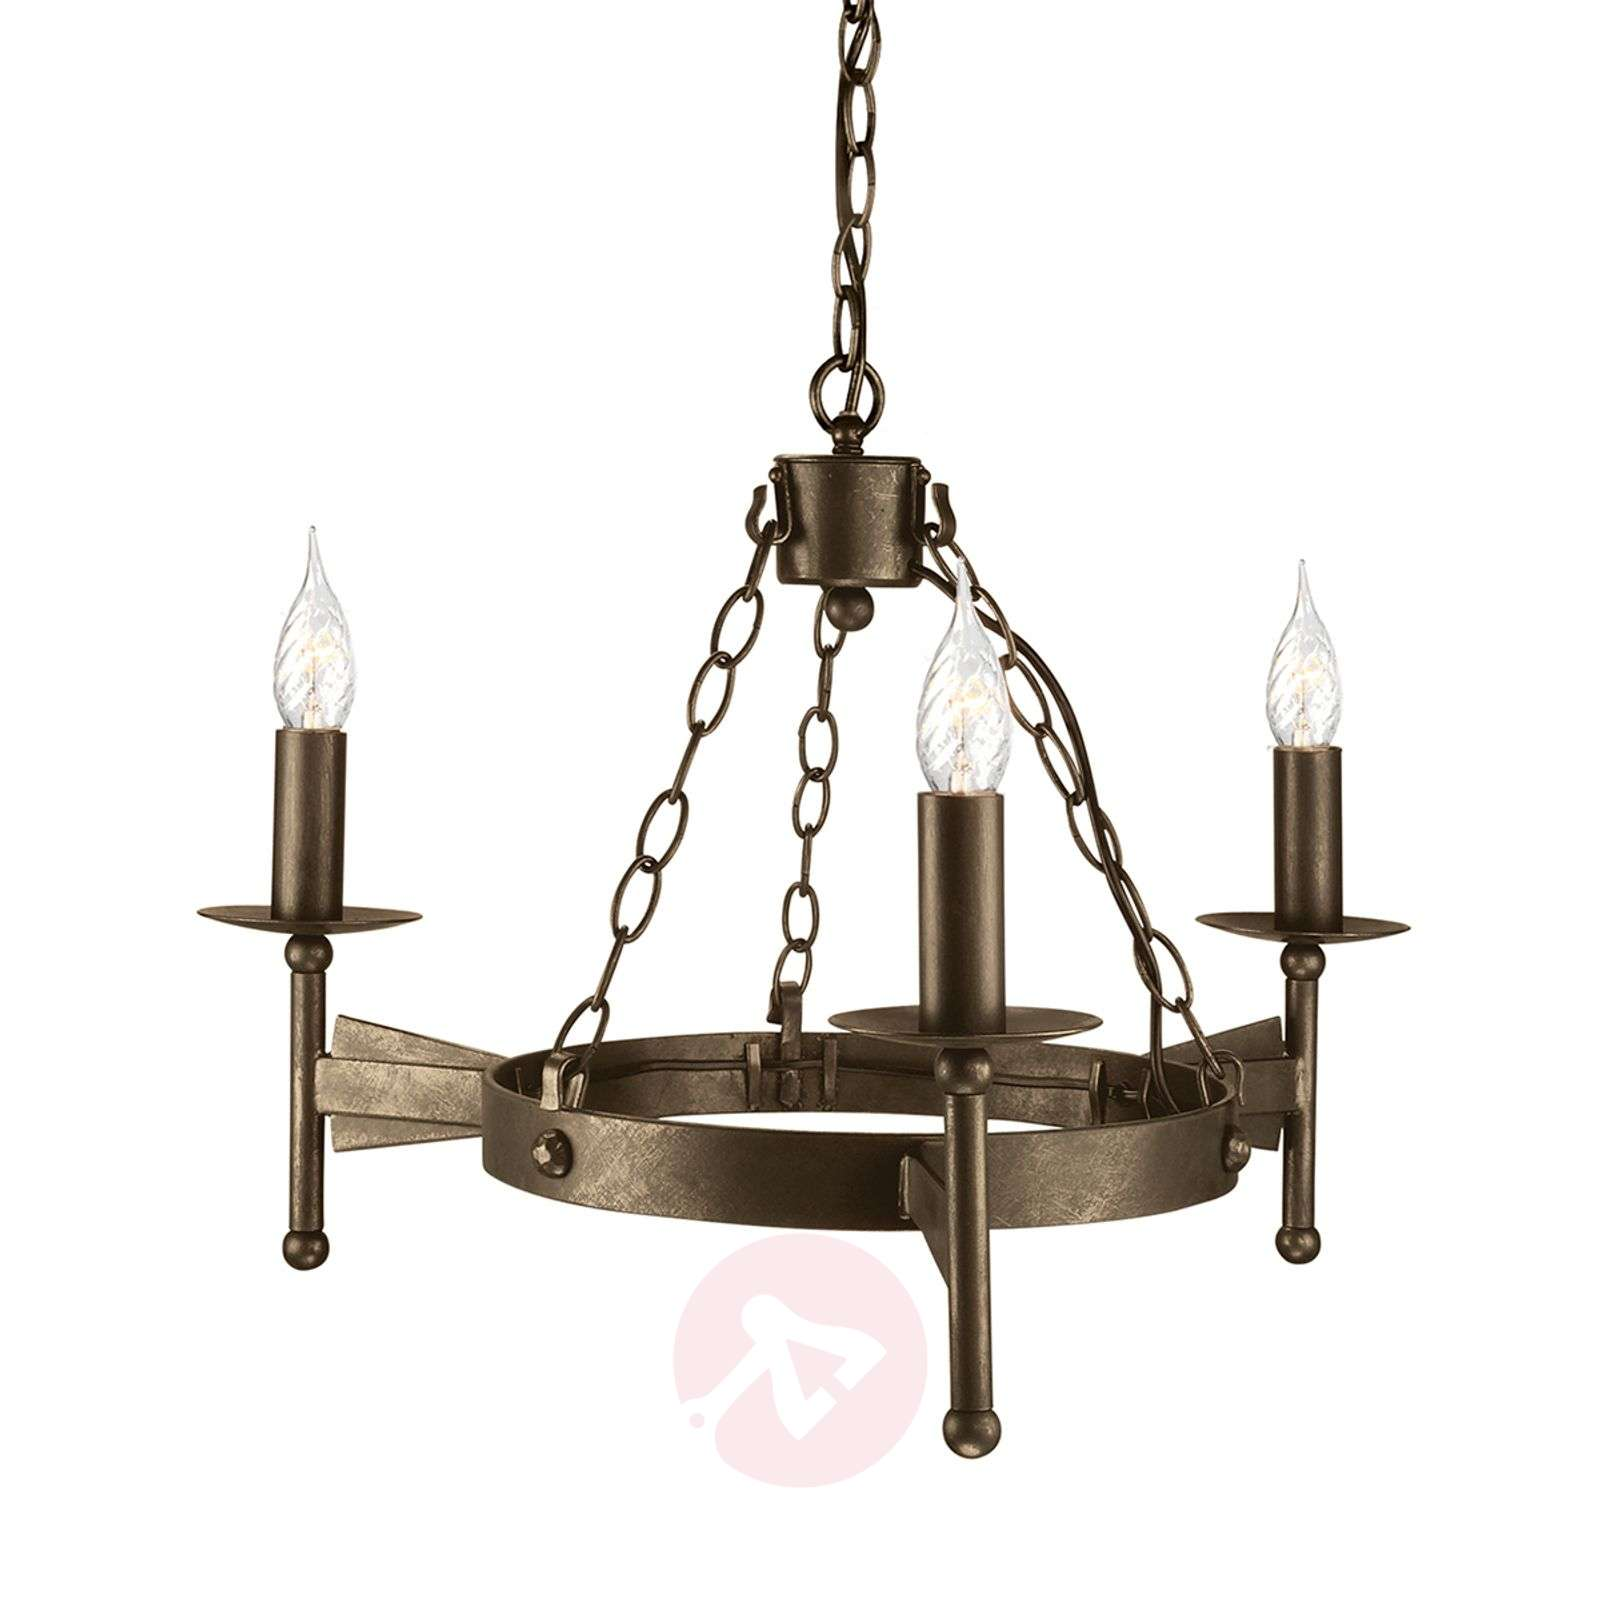 Cromwell Hanging Light Medieval-3048055X-03